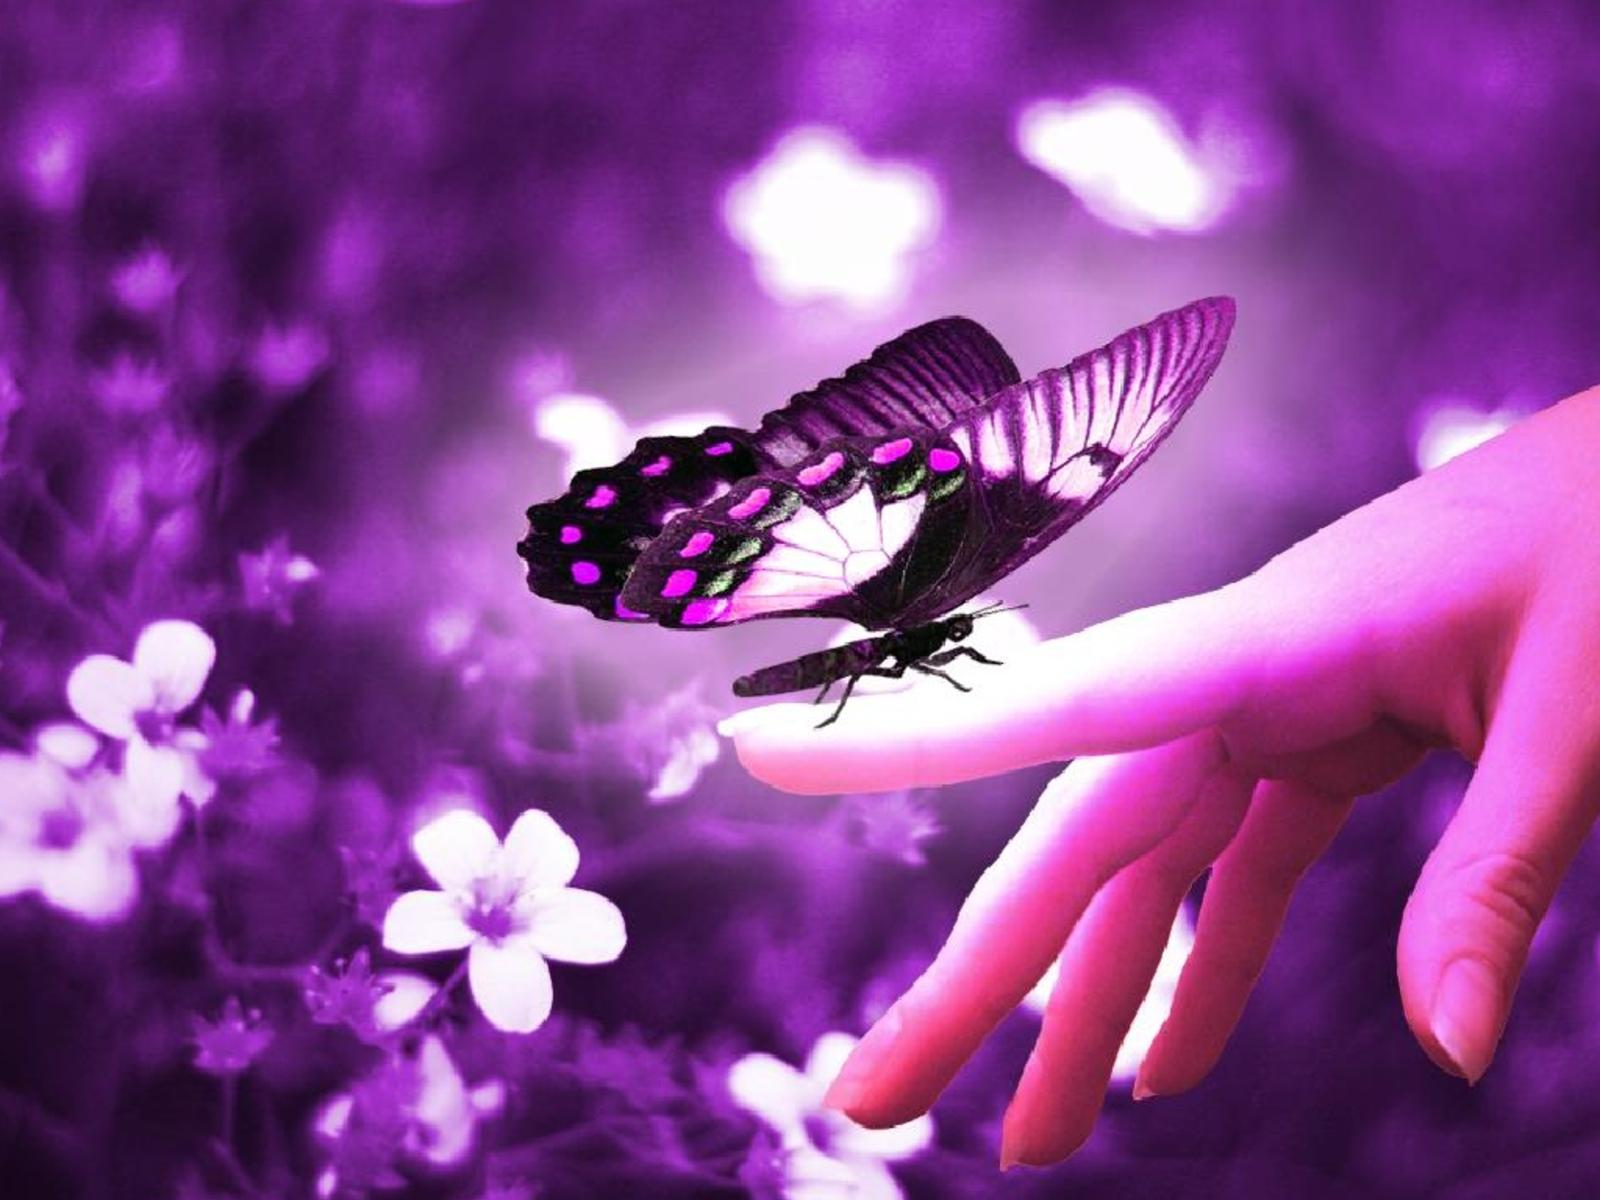 butterflies-hd-wallpapers-hd-wallpapers-inn.jpg